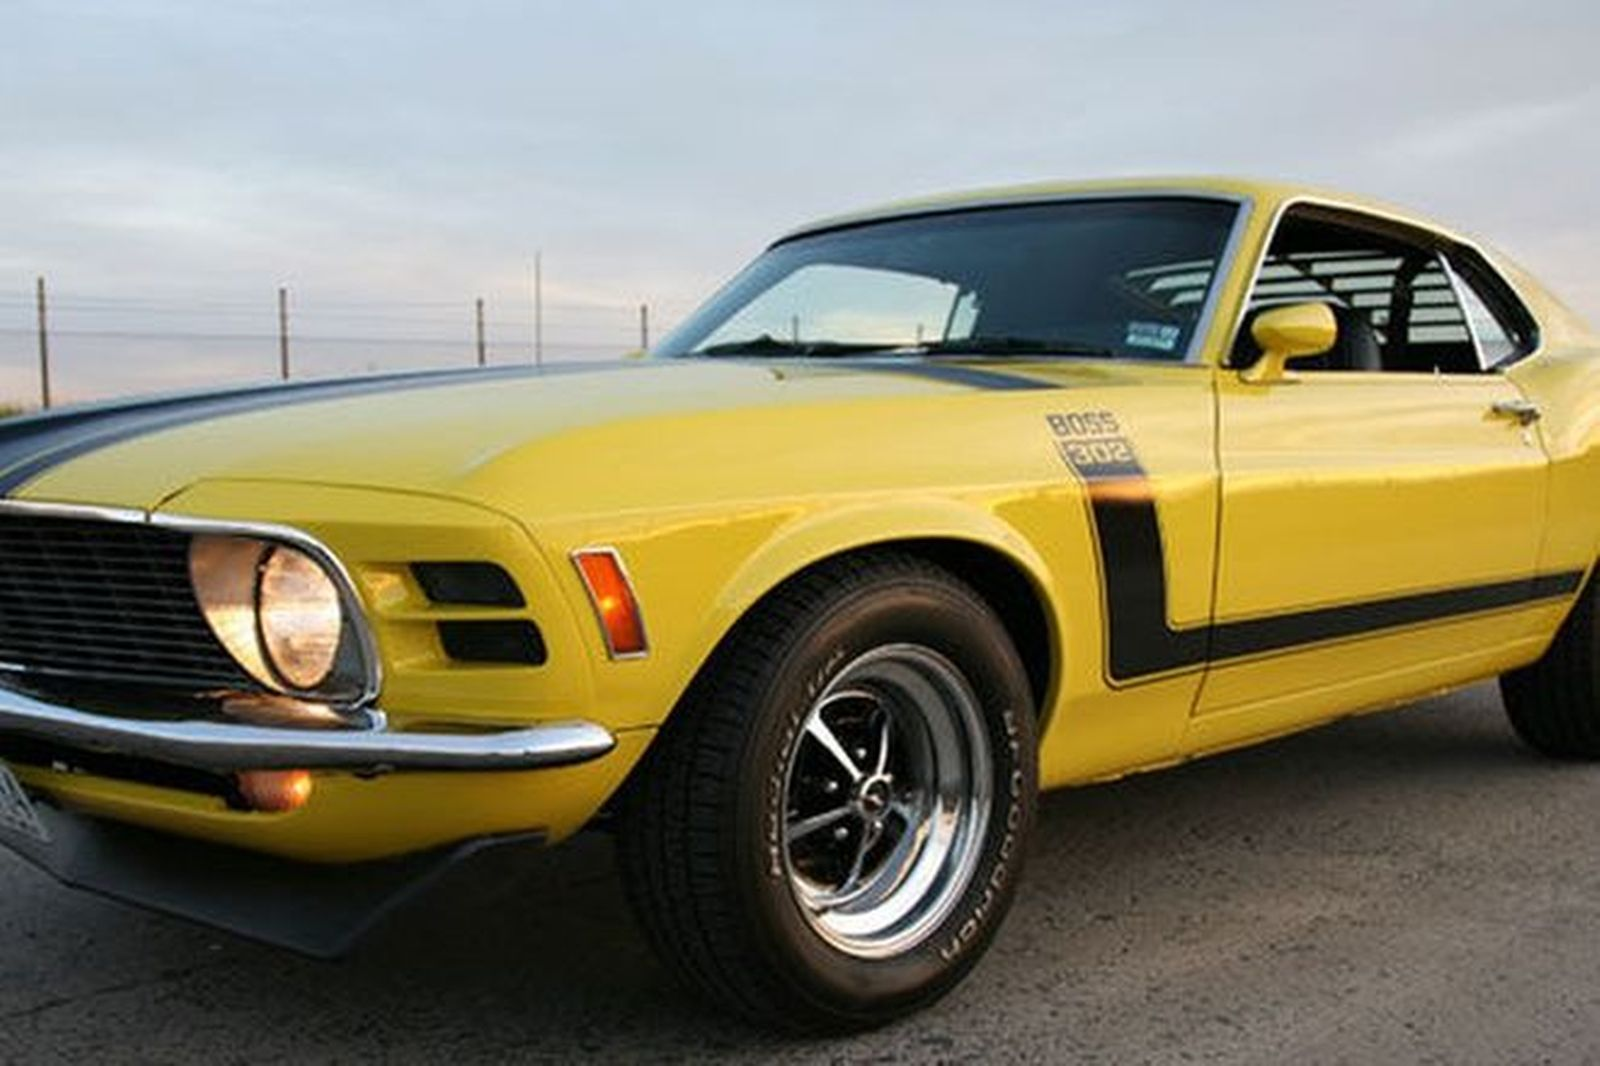 ford mustang boss 302 fastback rhd auctions lot 25 shannons. Black Bedroom Furniture Sets. Home Design Ideas